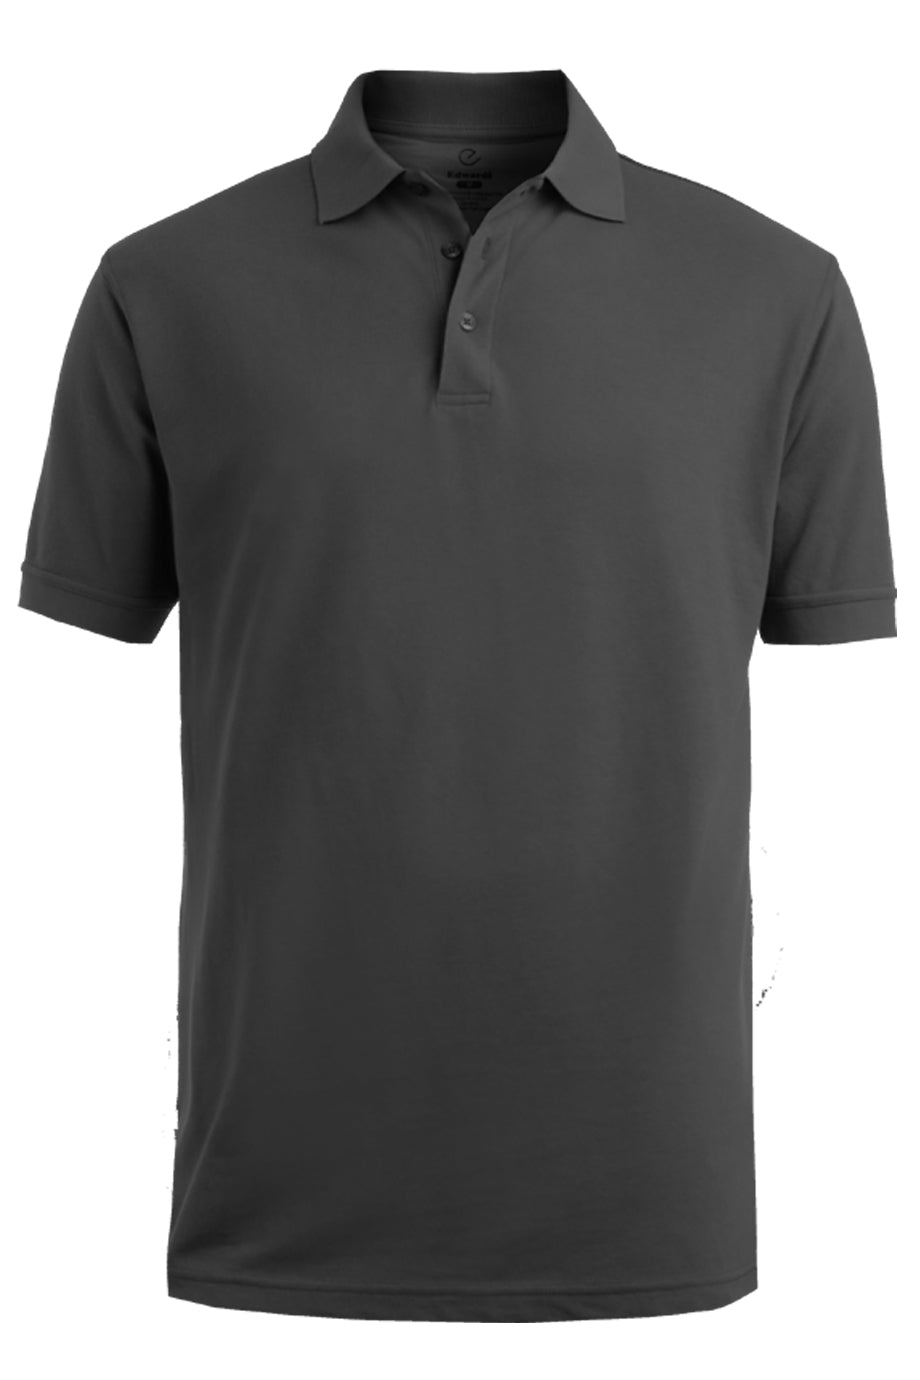 Steel Grey Edwards Mens Blended Pique Short Sleeve Polo